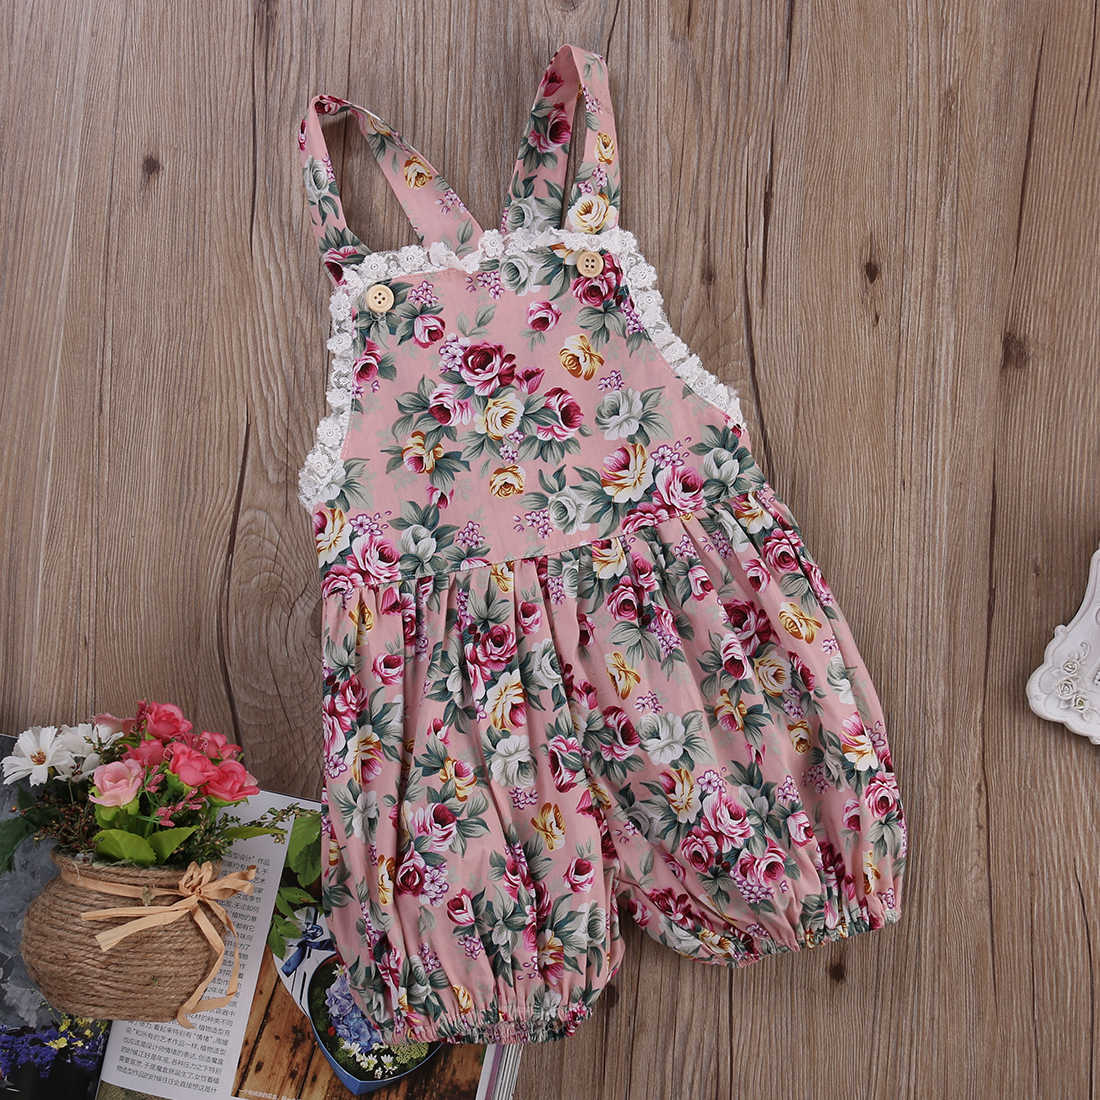 2b3f4d21e ... New Infant Kids Rompers Toddler Baby Girls Strap Flower Casual Cute  Backless Jumper Romper Jumpsuit Summer ...